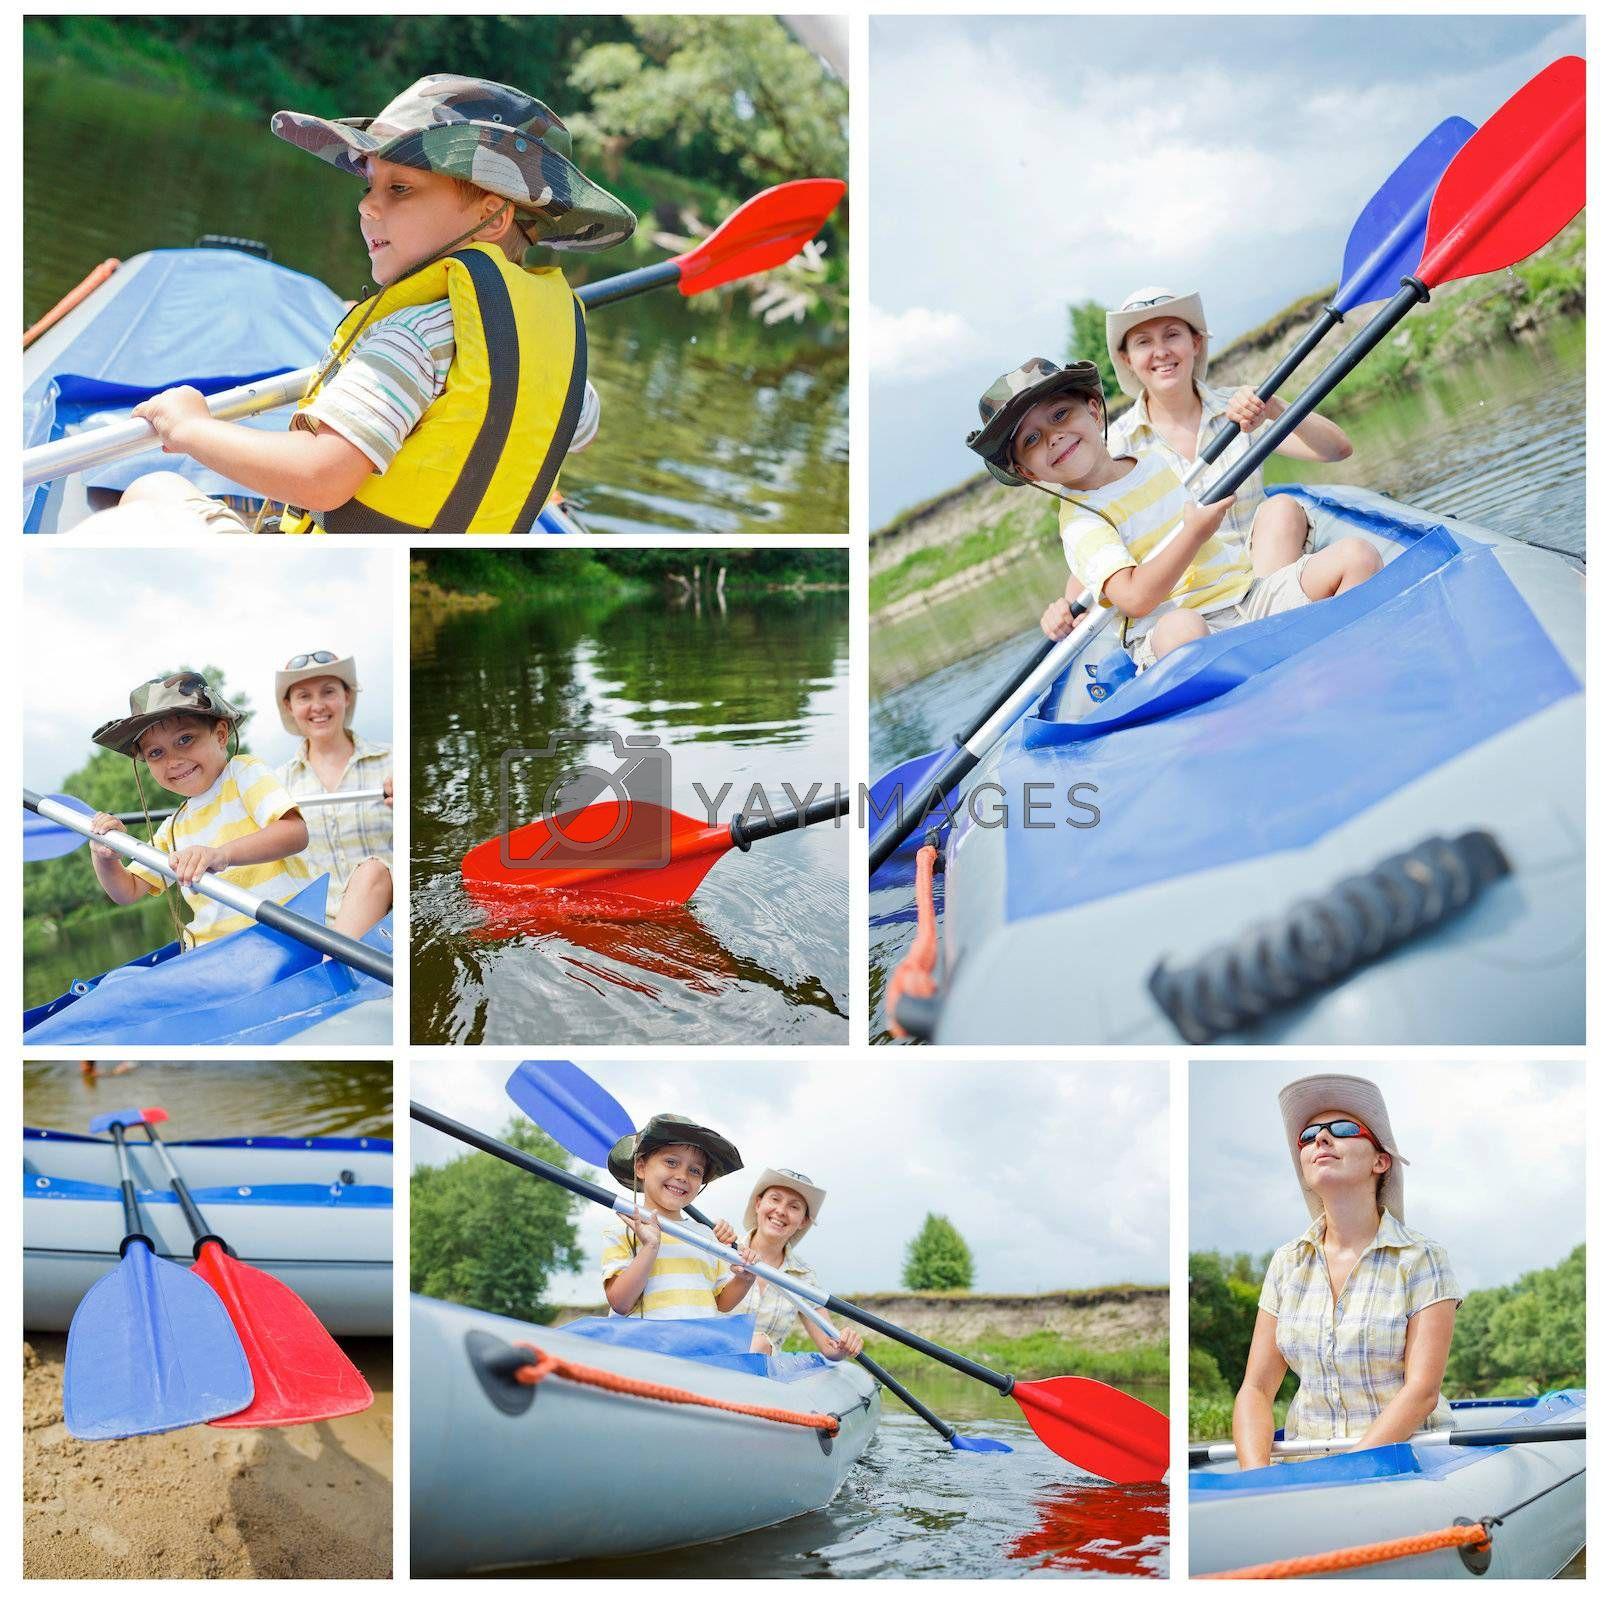 Collage of images happy young boy with mother paddling a kayak on the river, enjoying a lovely summer day